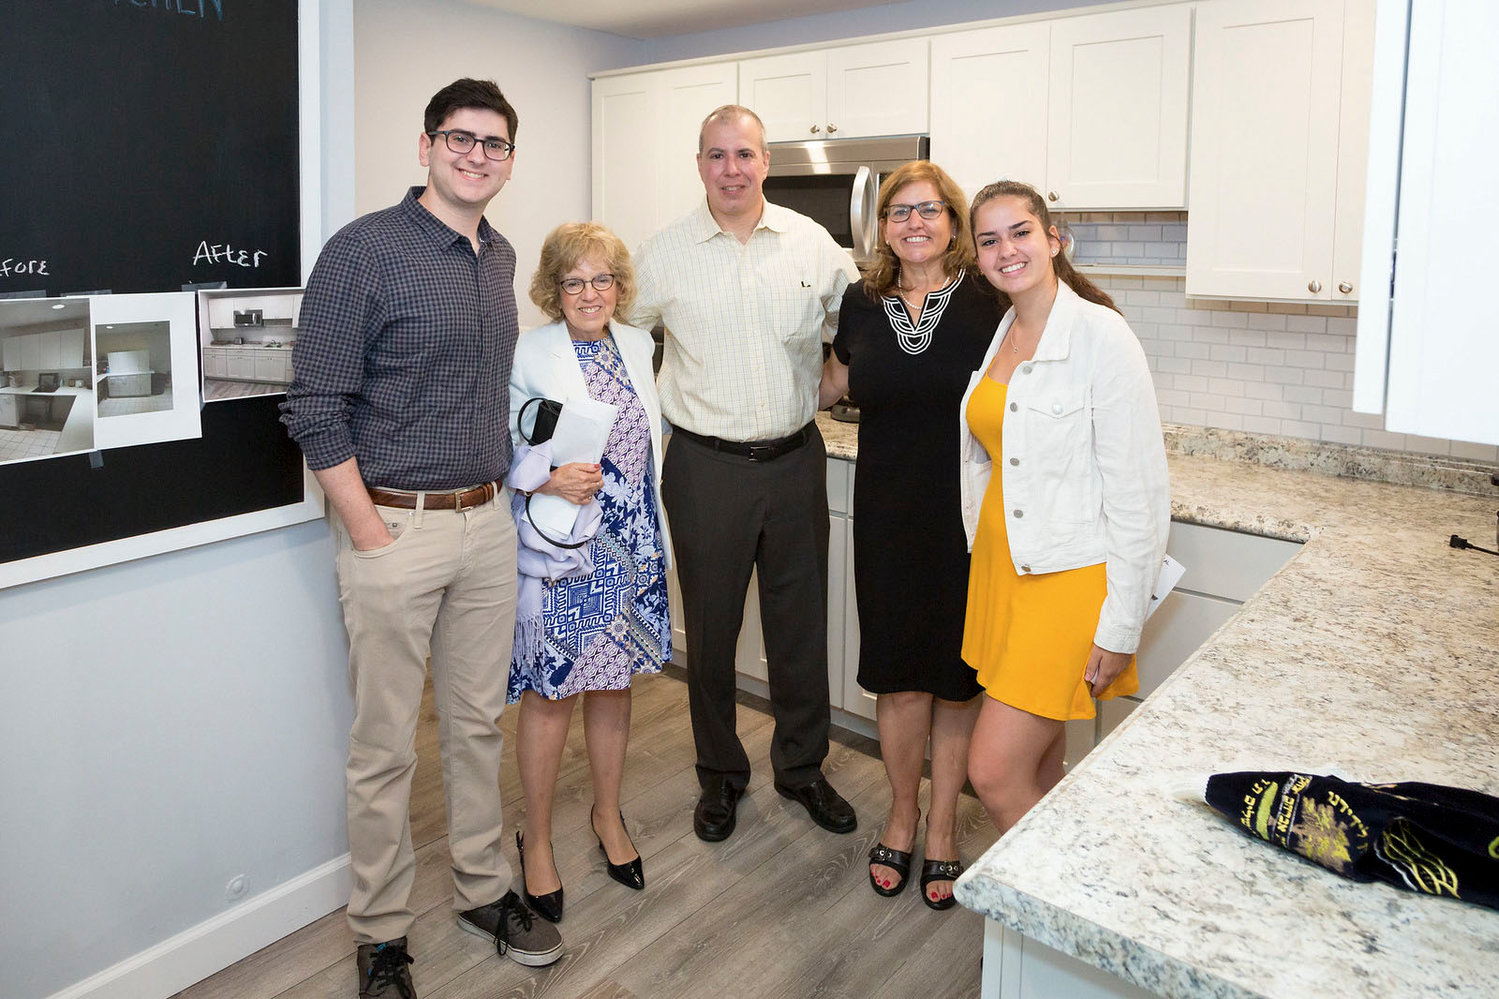 Temple Hillel dedicated a newly redesigned minyan kitchen in the memory of deceased synagogue member Victor Spetalnick. From left were Matt Siegel, Barbara Spetalnick and Marc, Abby and Lauren Siegel.